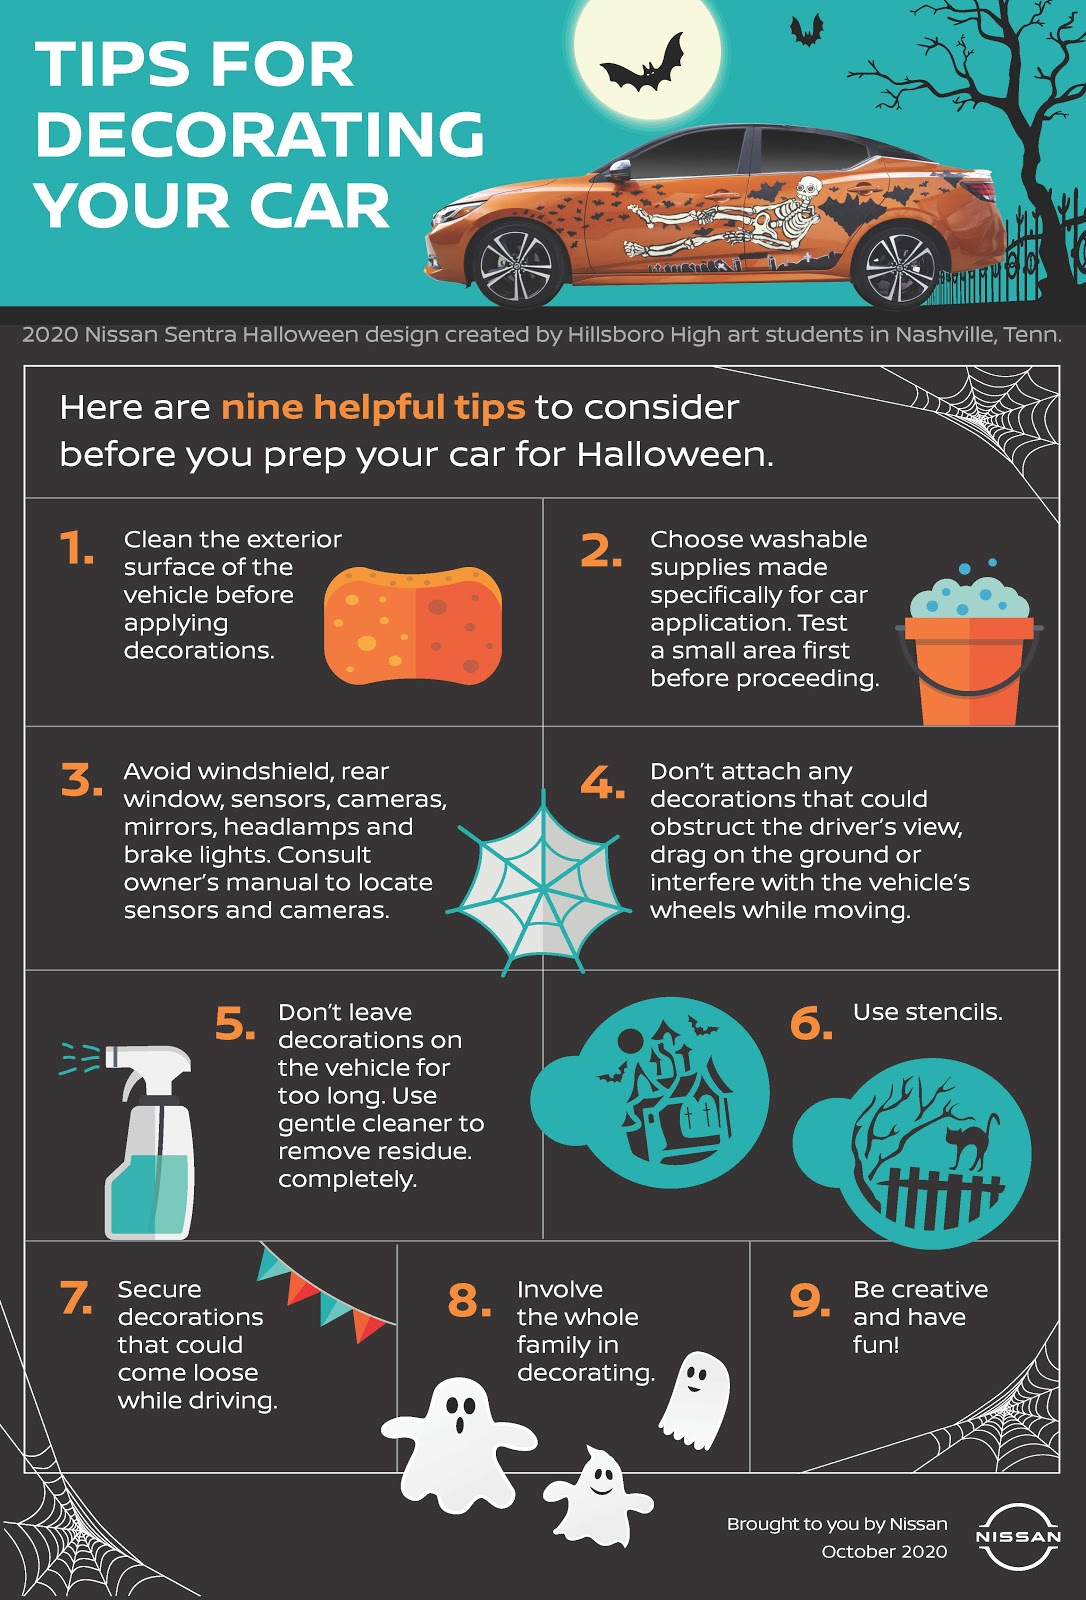 Tips for Decorating Your Car